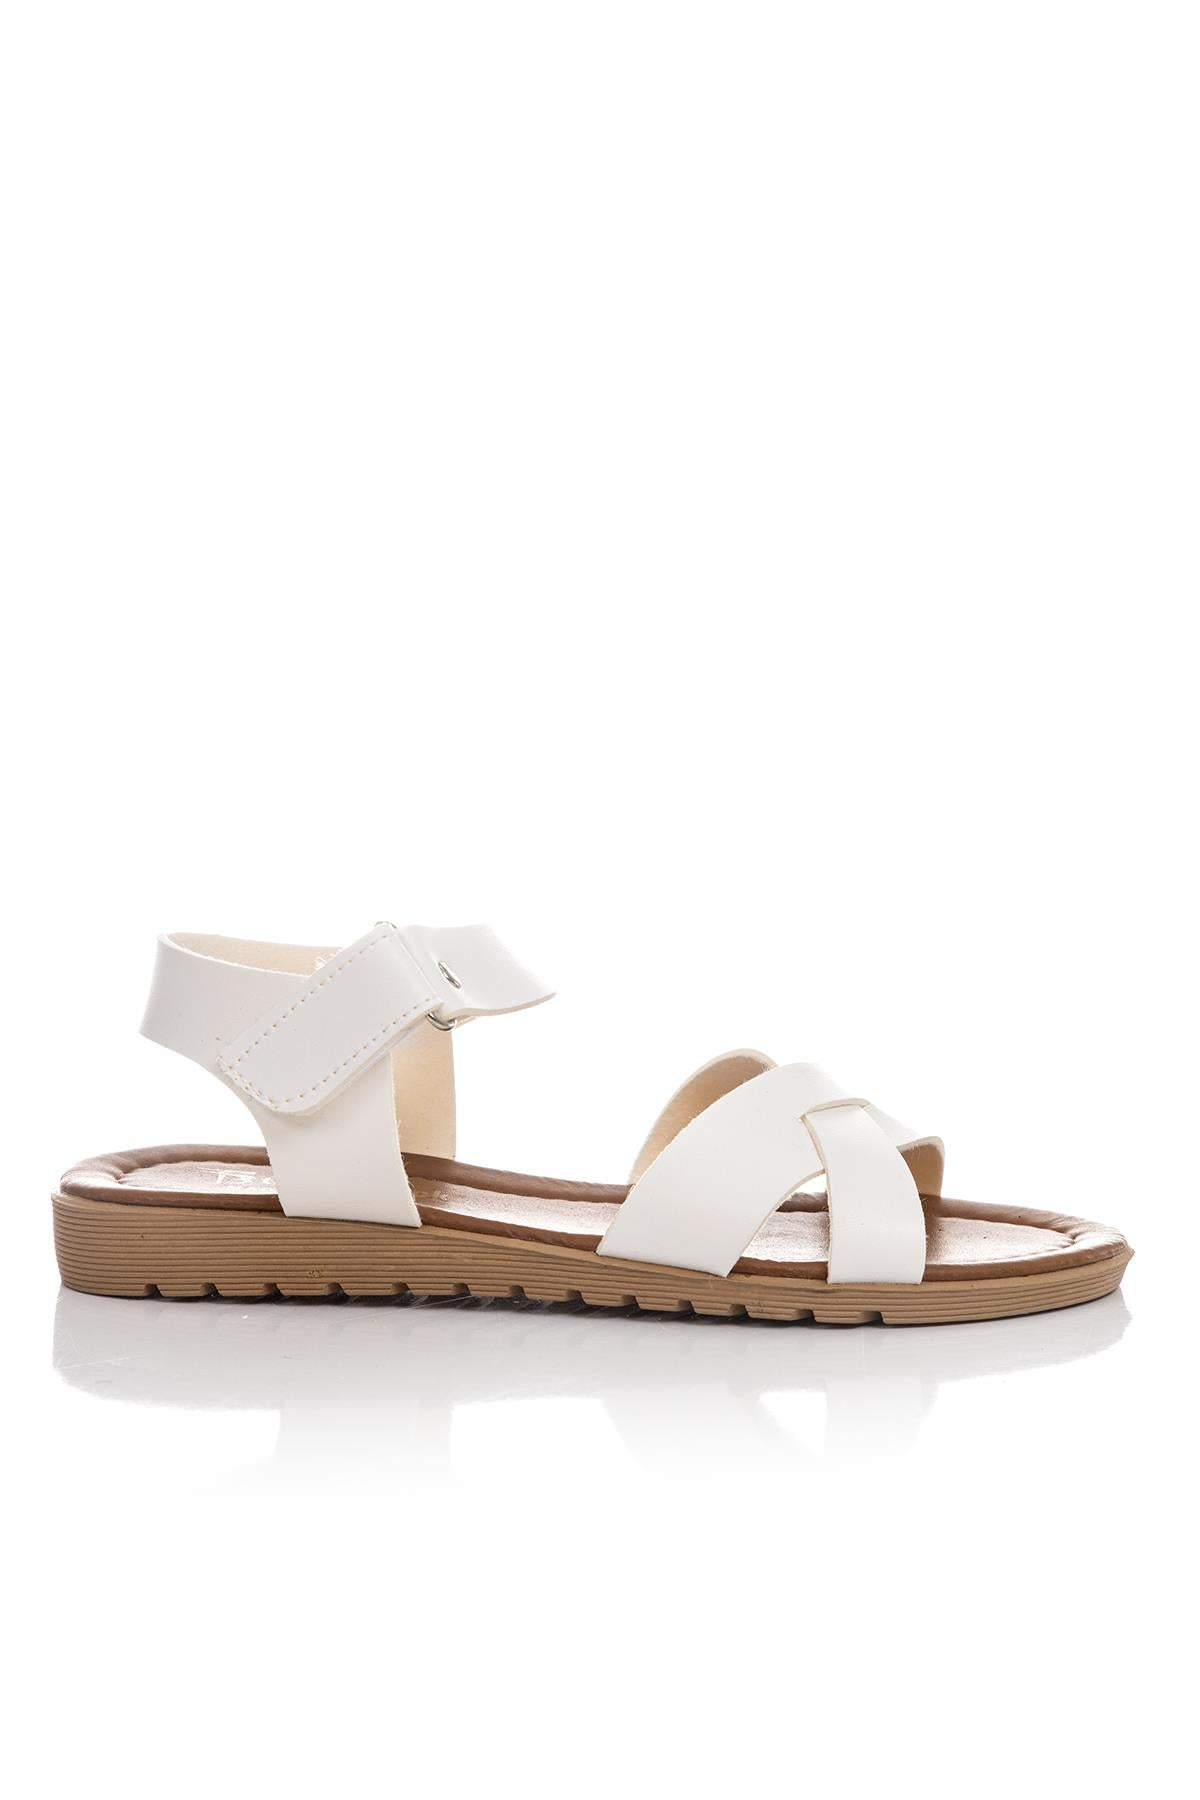 Women's White Casual Sandals